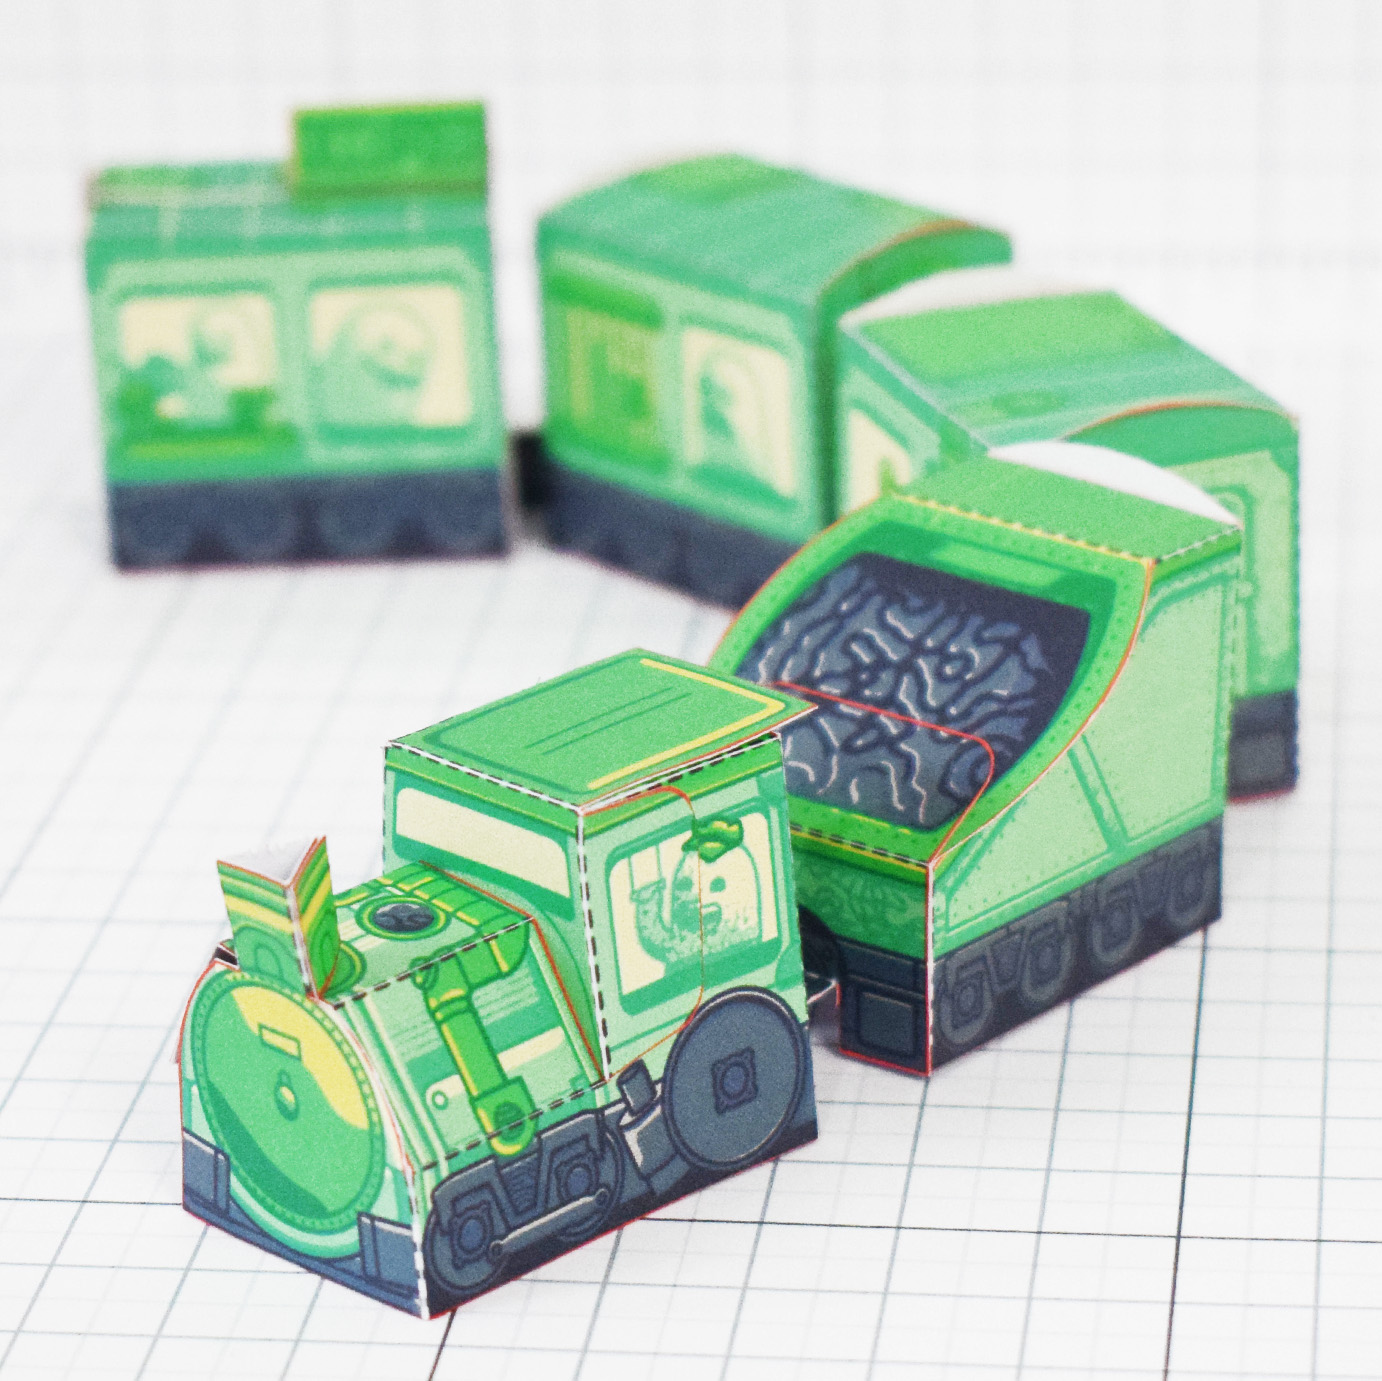 PTI - Ghost Train Fold Up Toys Image - Square